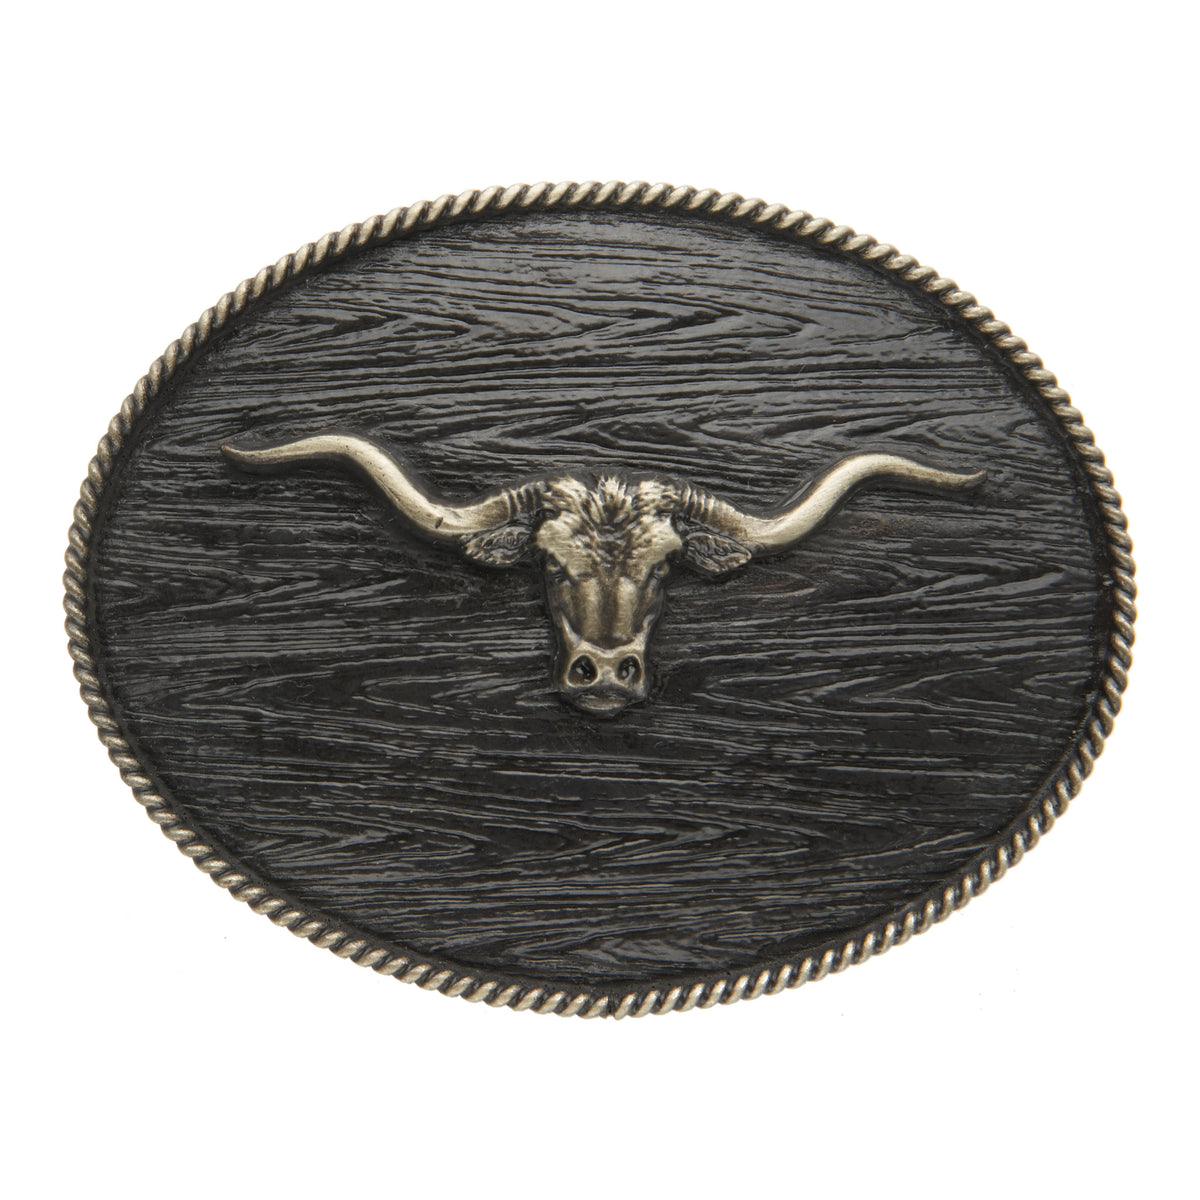 Longhorn with Wood Grain Iconic Classic Buckle